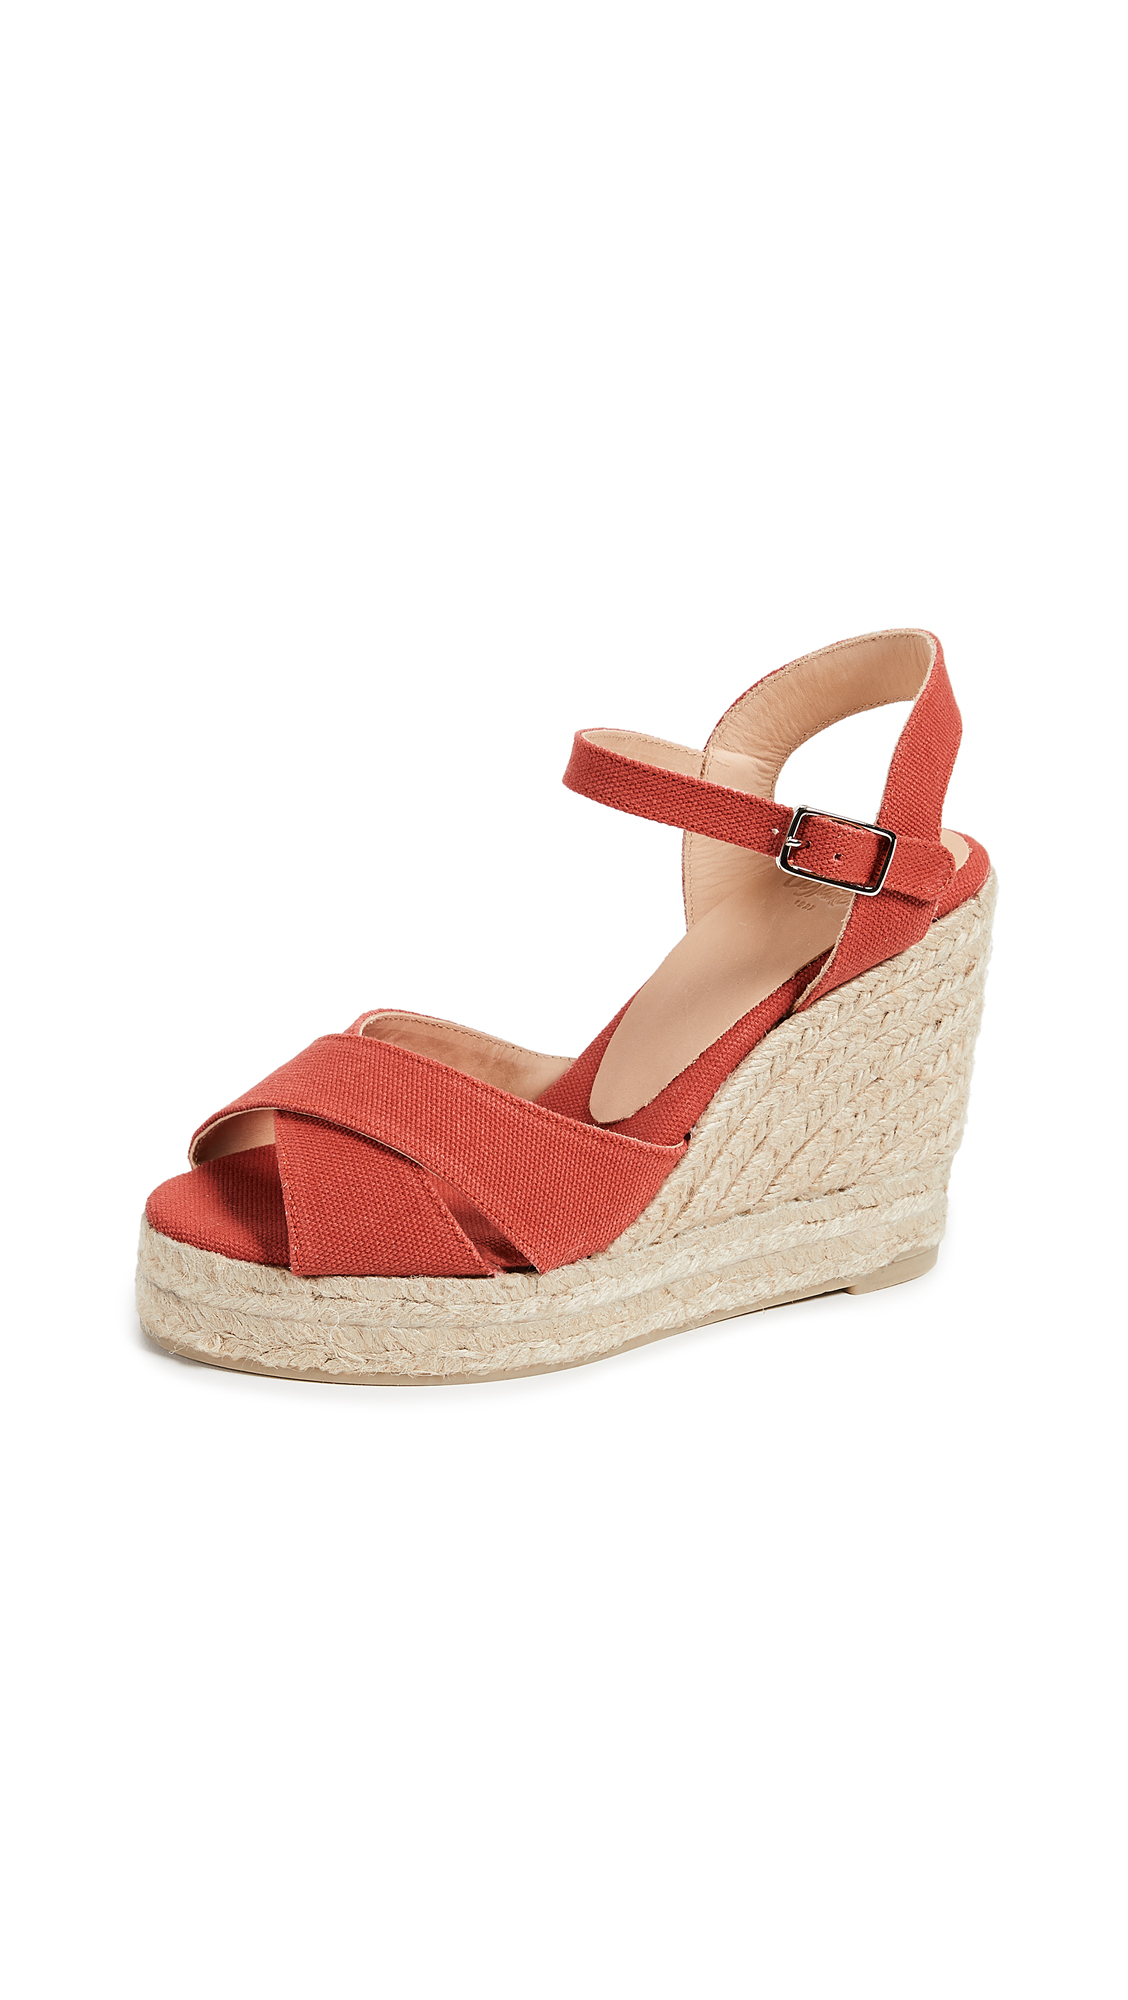 Castaner Blaudell Crisscross Wedge Sandals